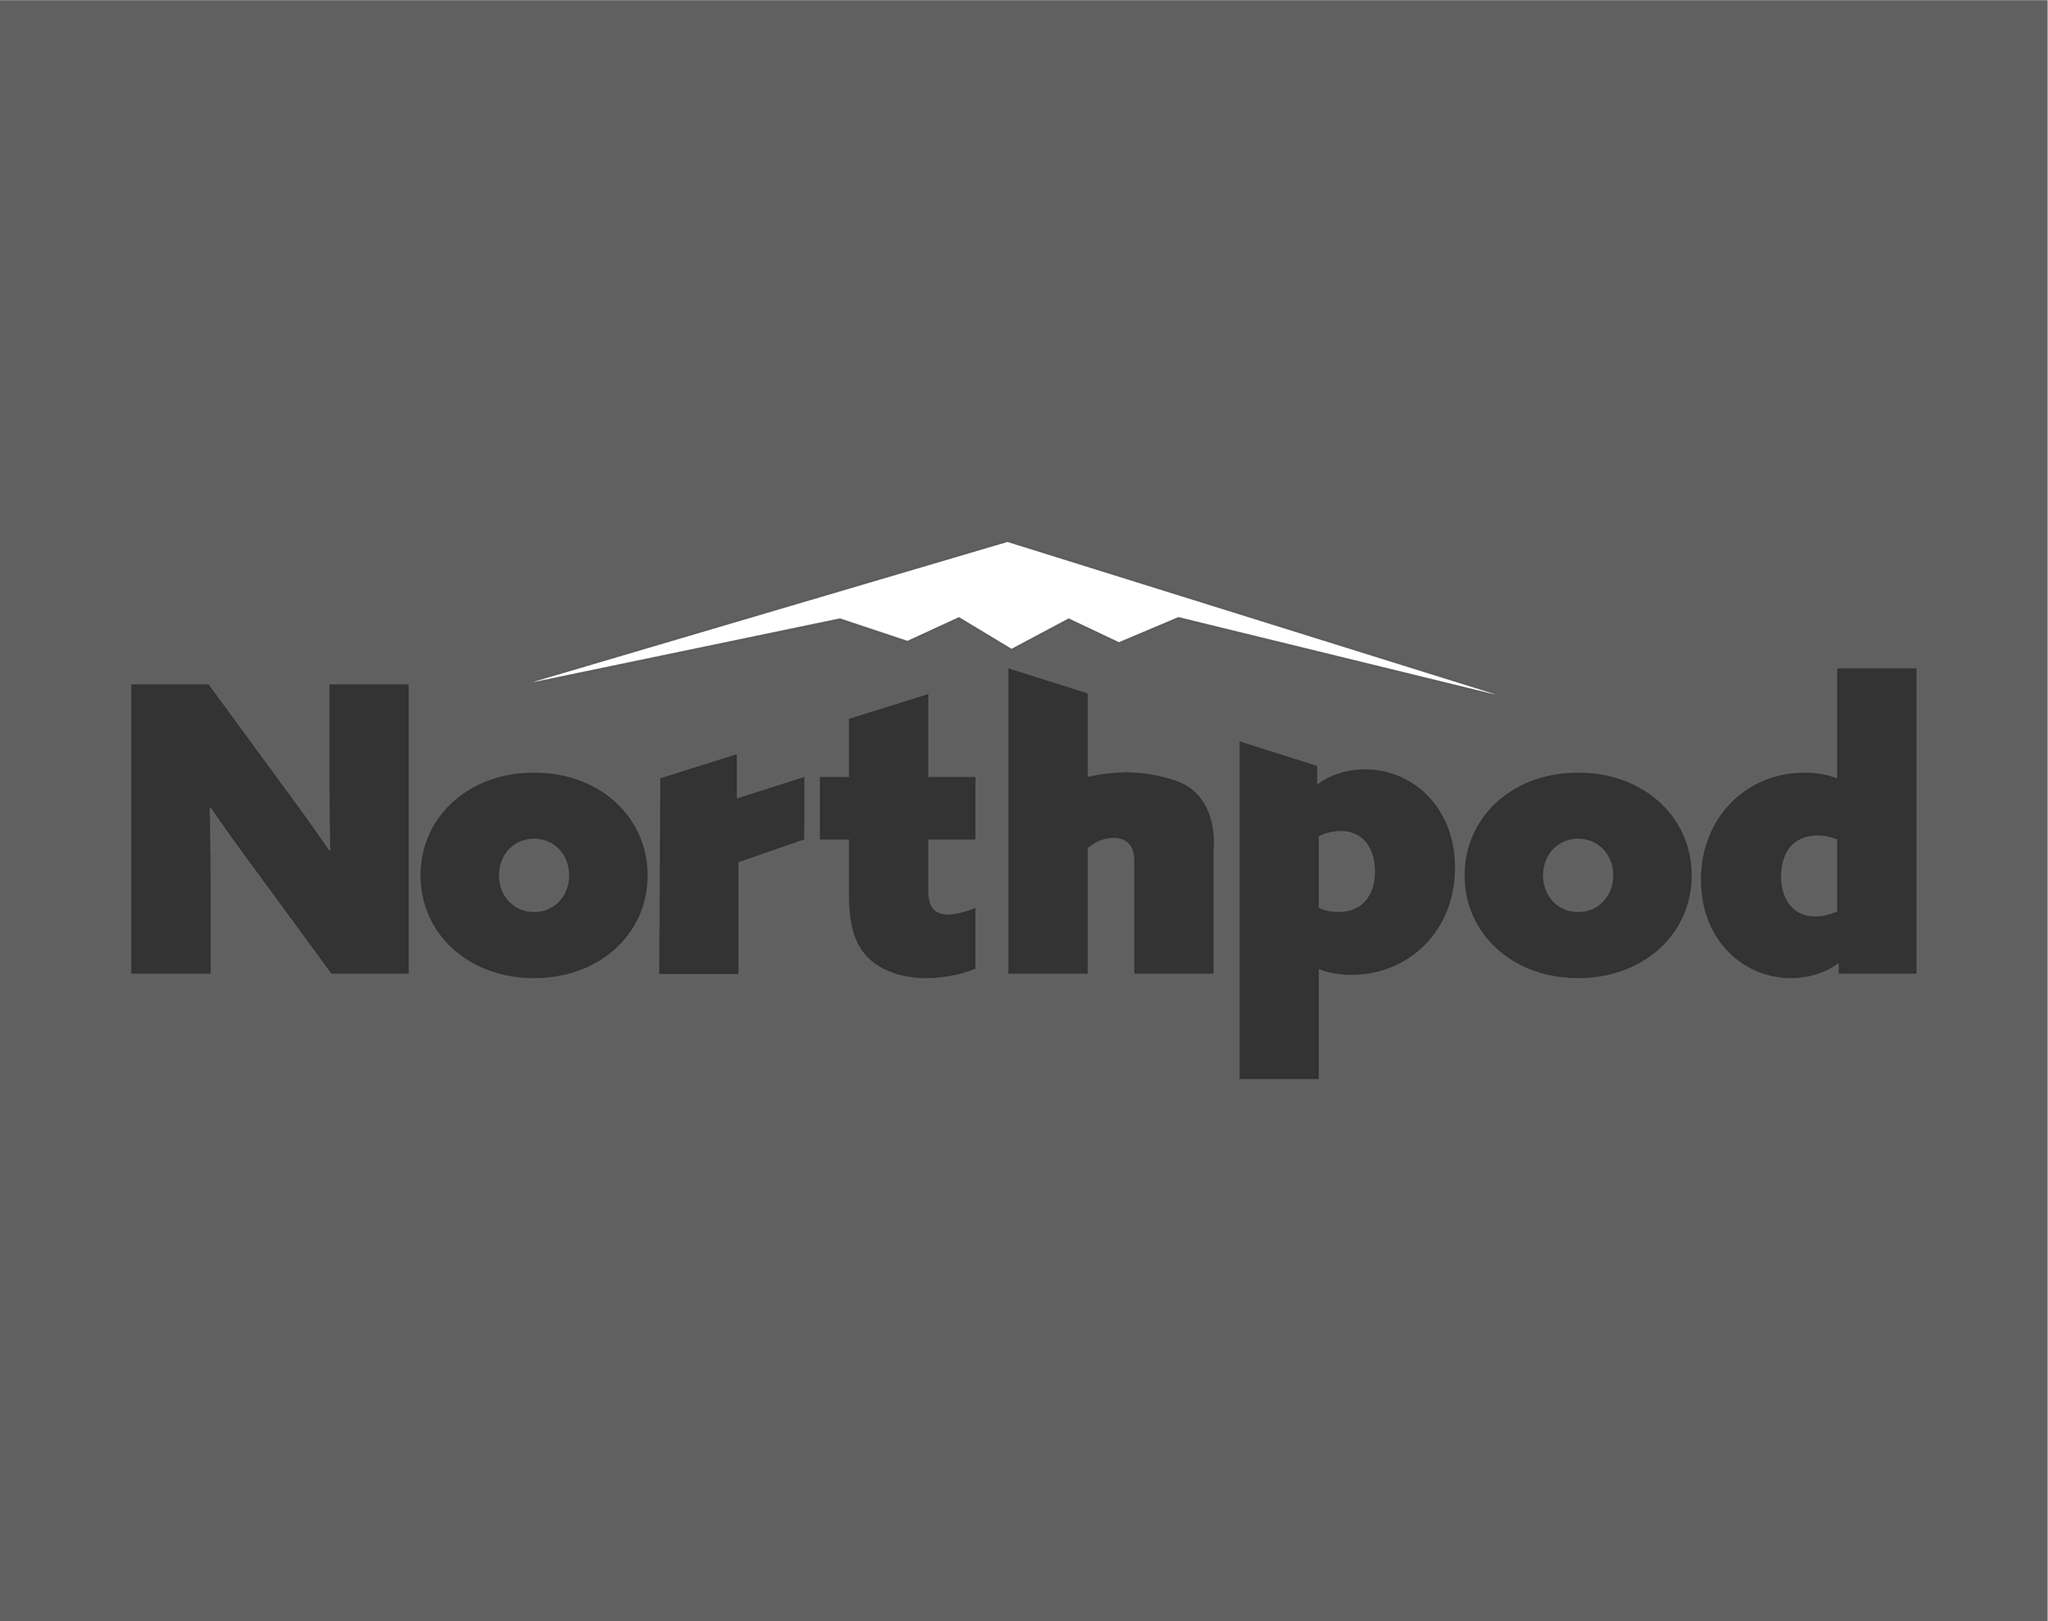 northpod.png